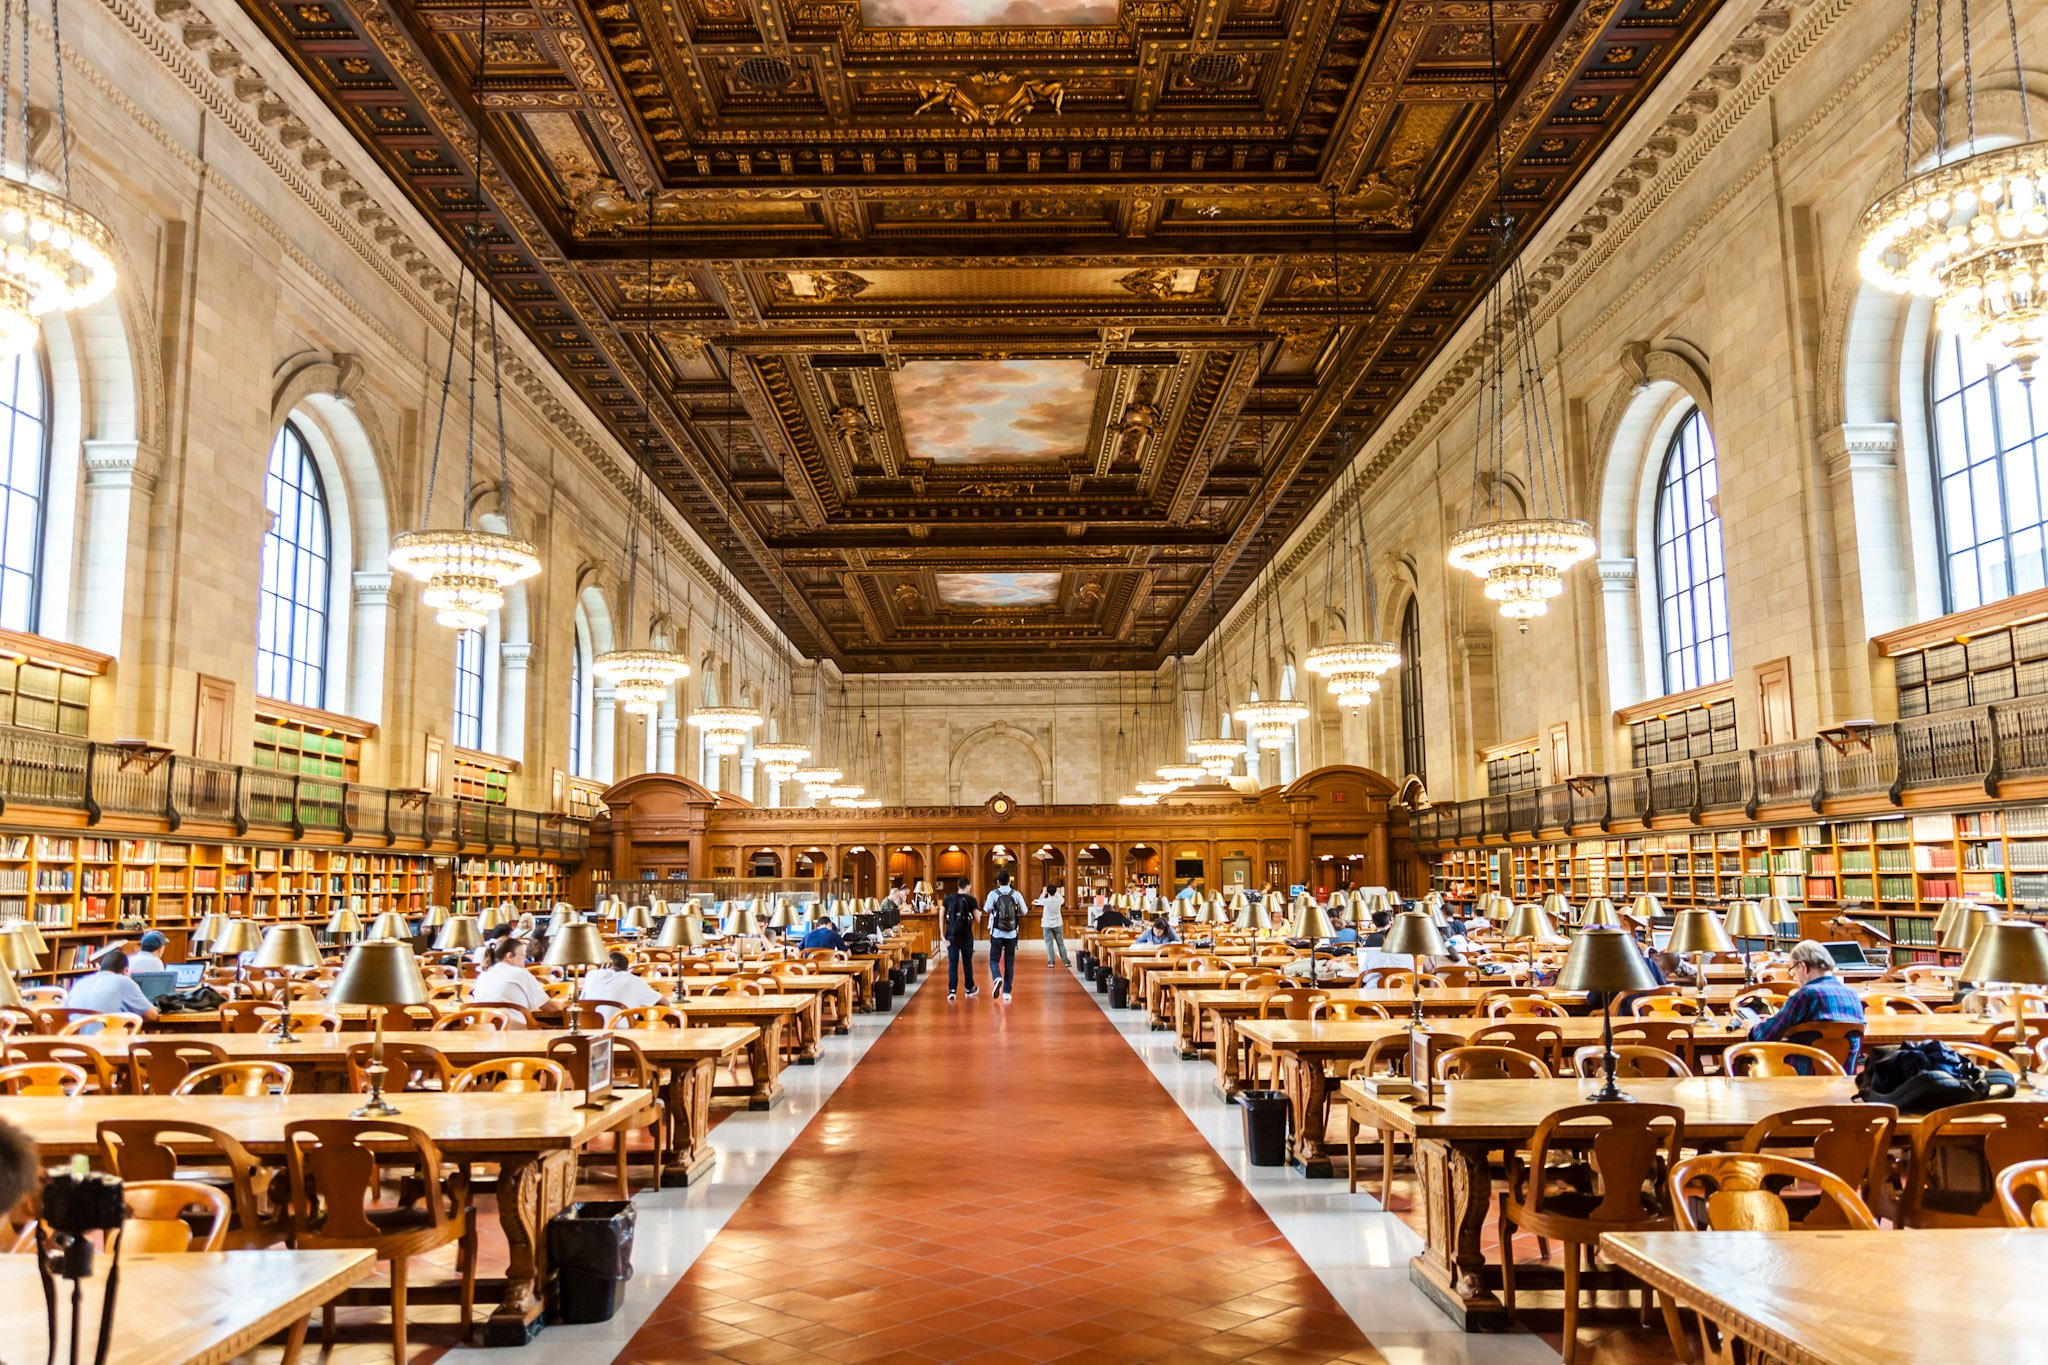 rose reading room NY public library